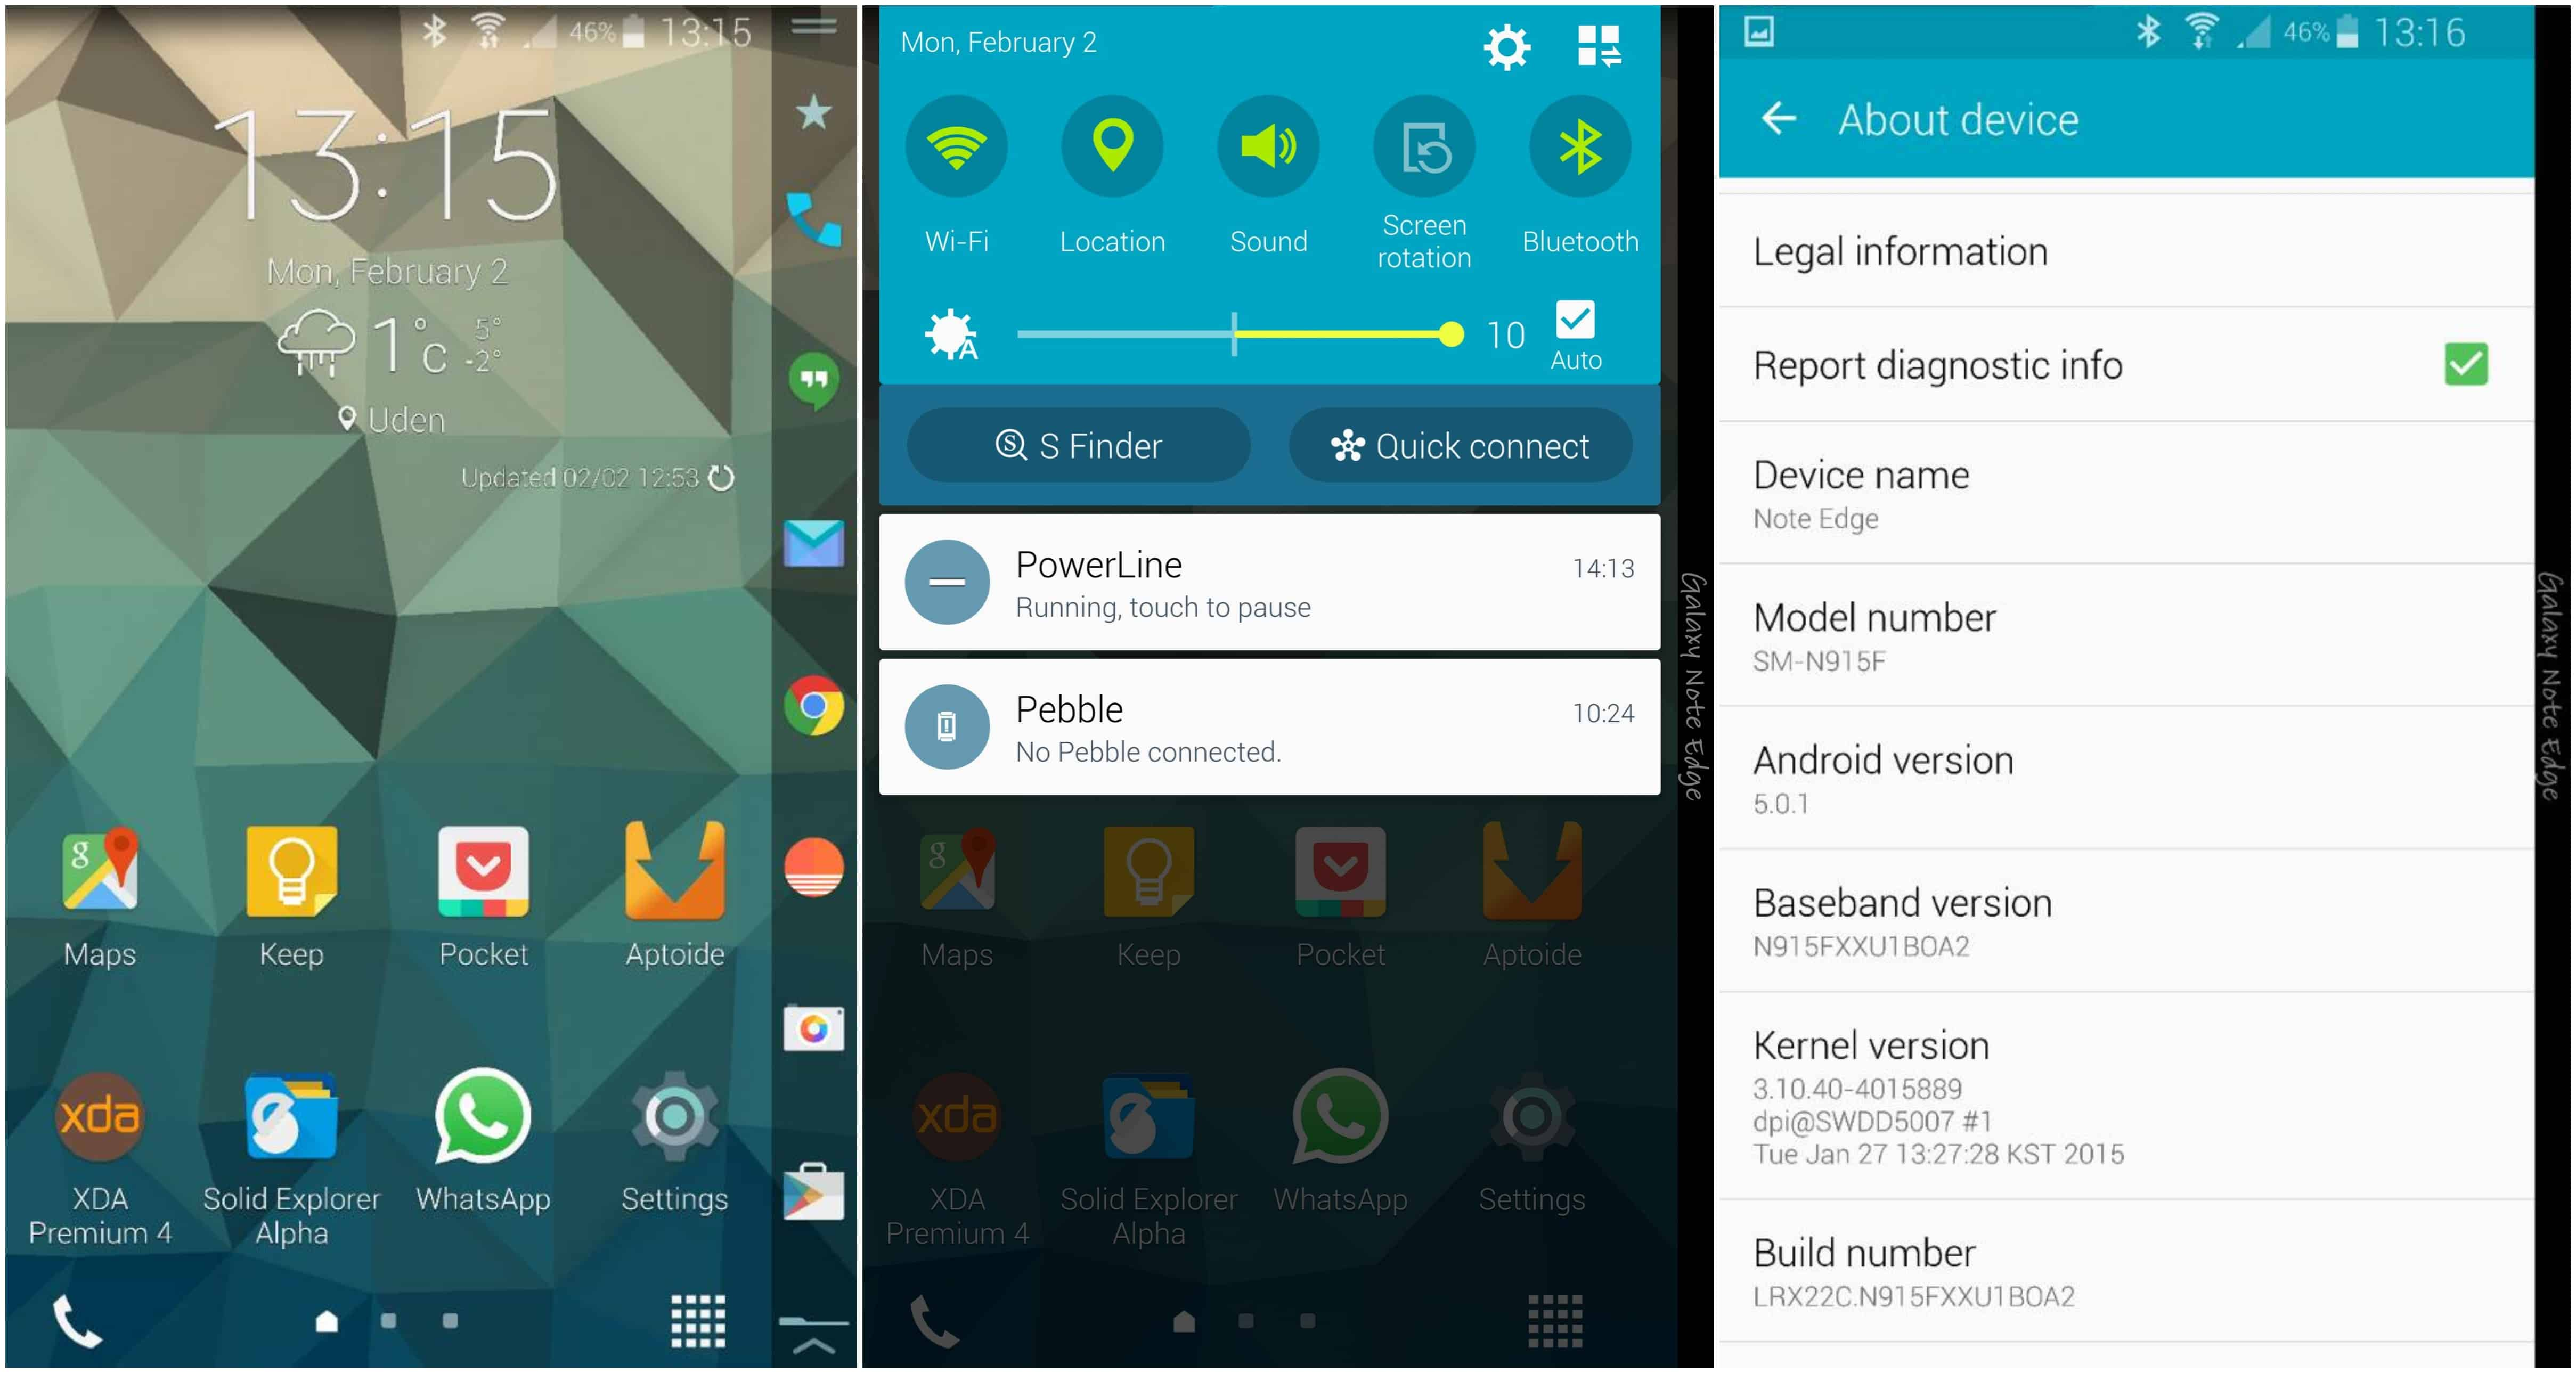 [Leaked] How to Install Android 5.0.1 Lollipop in Galaxy Note Edge. 1